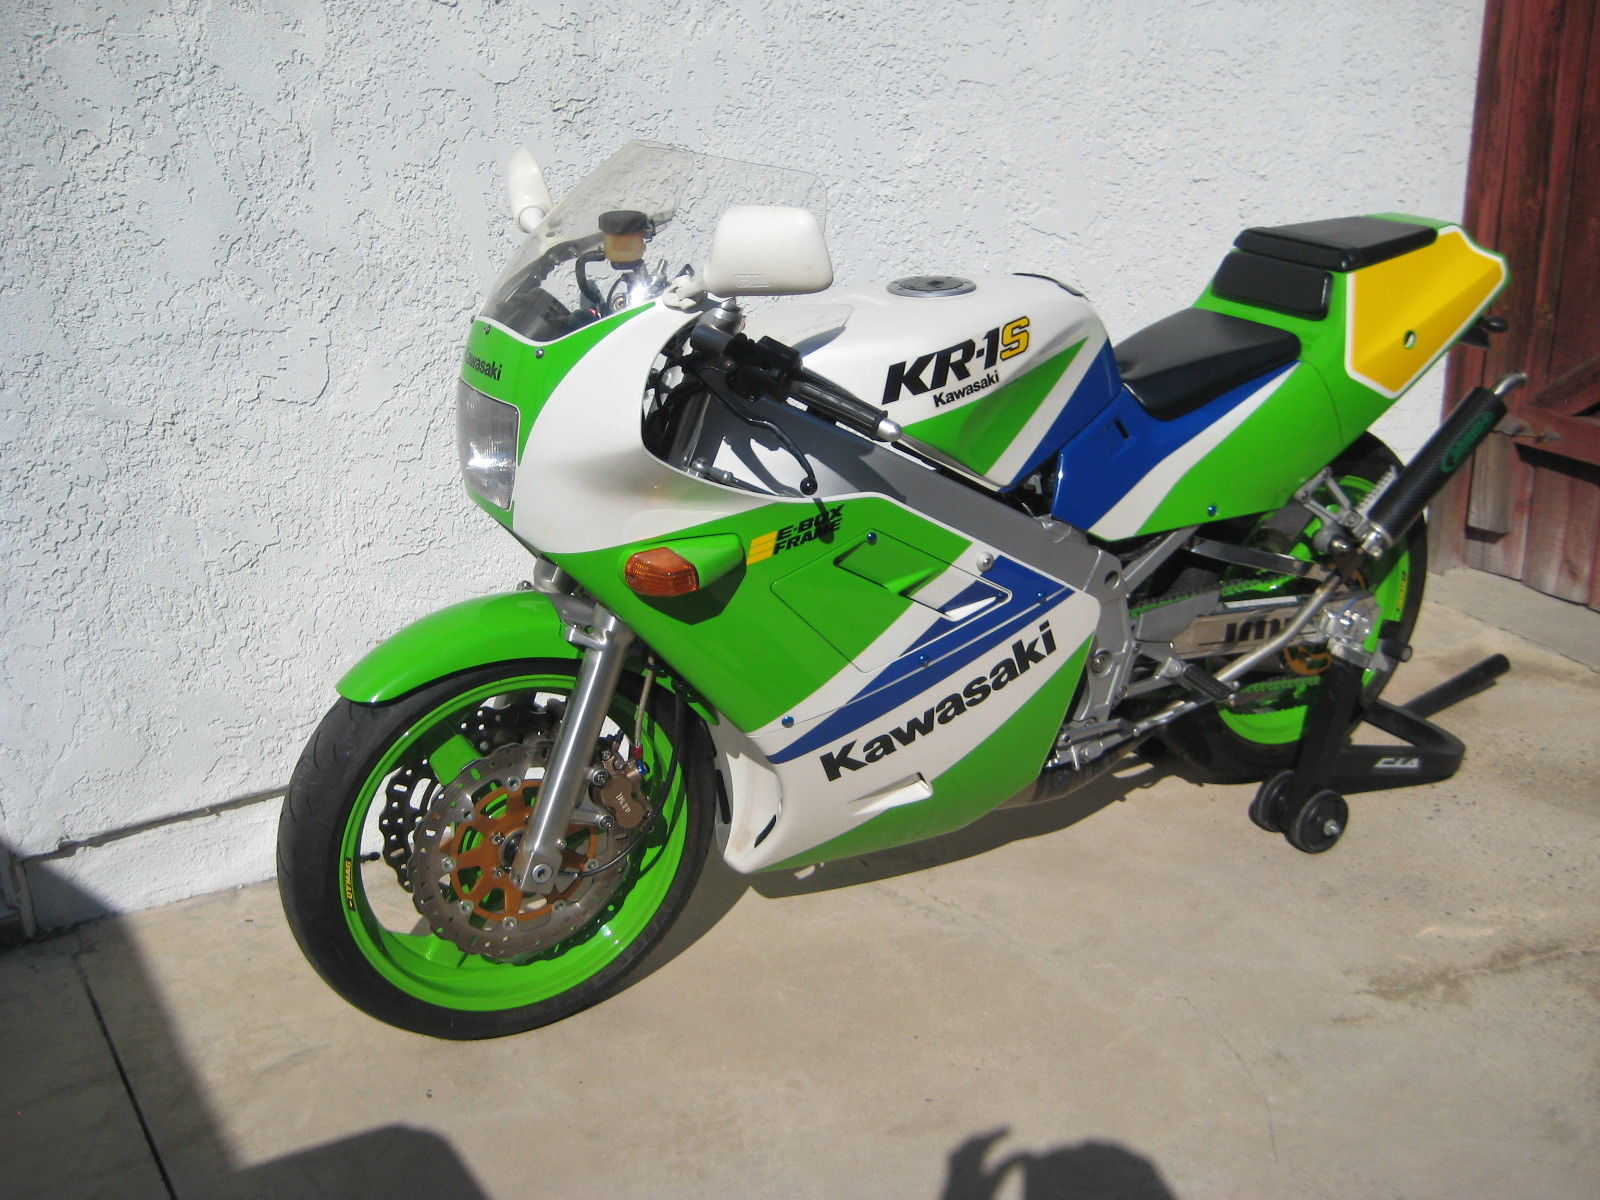 Cali-Titled Two-Stroke: 1990 Kawasaki KR-1S for Sale - Rare SportBikes For  Sale